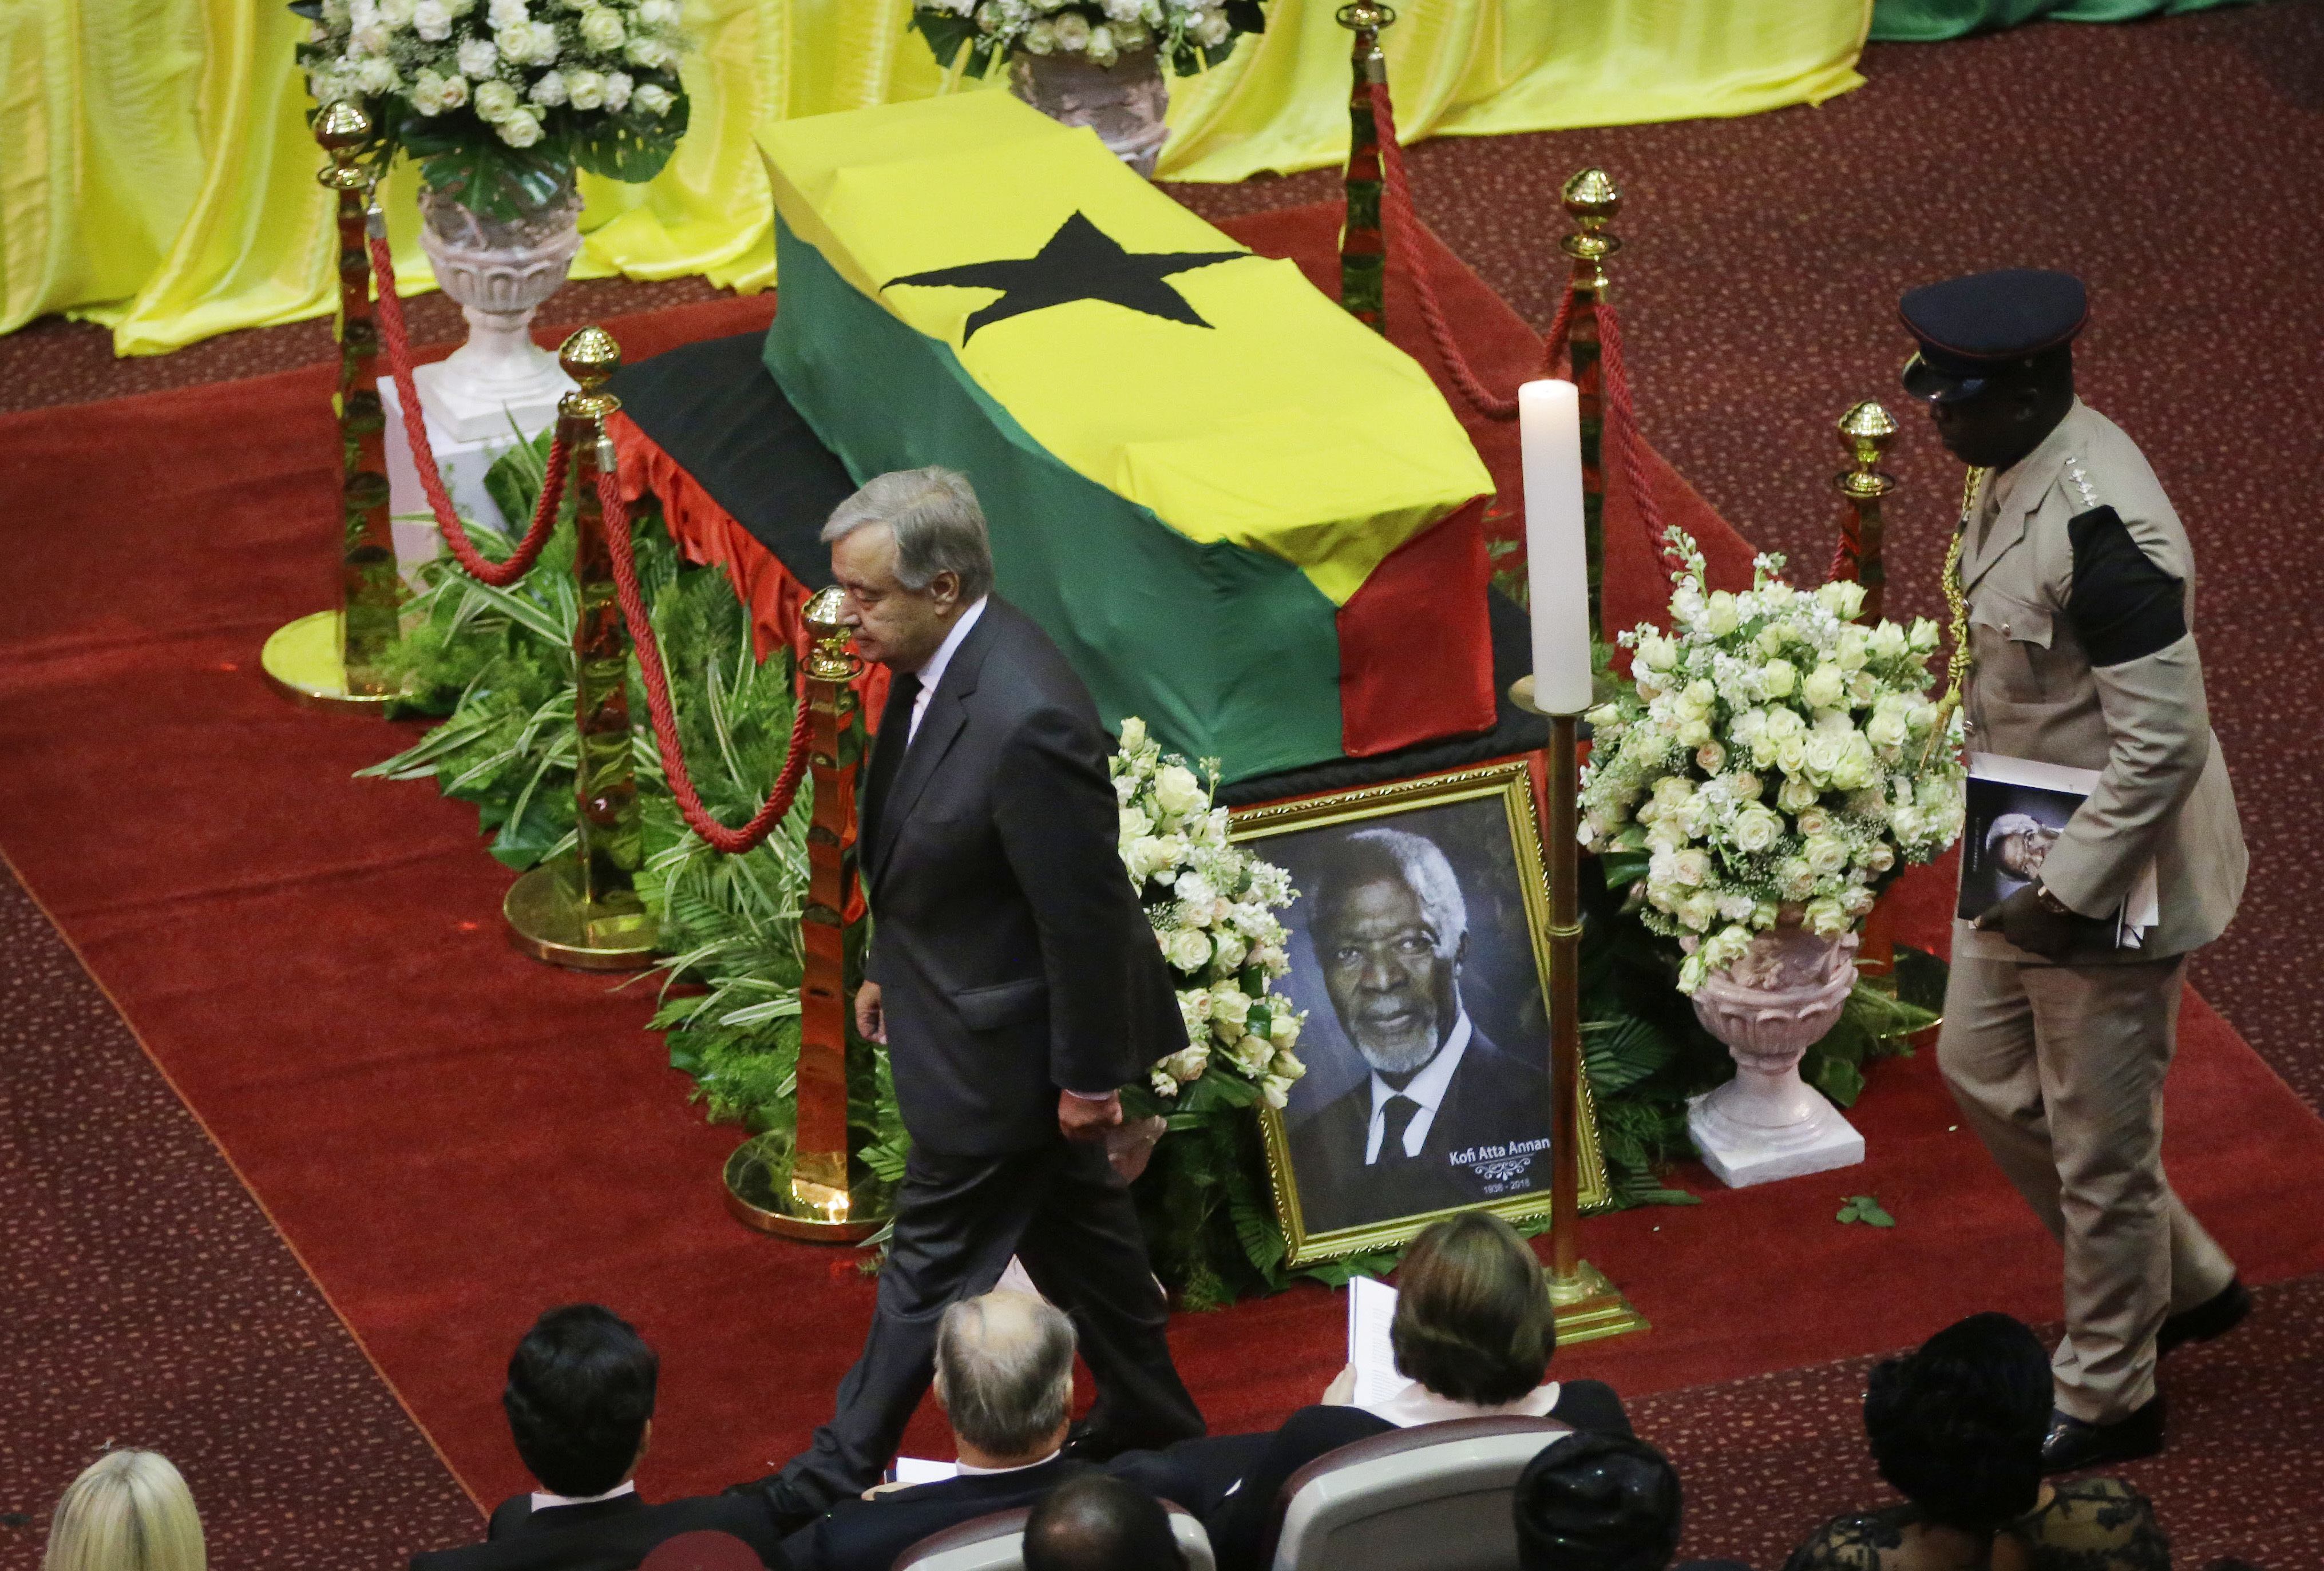 Current U.N. Secretary-General Antonio Guterres, left, pays his respects by the coffin of former U.N. Secretary-General Kofi Annan, draped with the Ghana flag, during a state funeral at the Accra International Conference Center in Ghana Thursday, Sep...